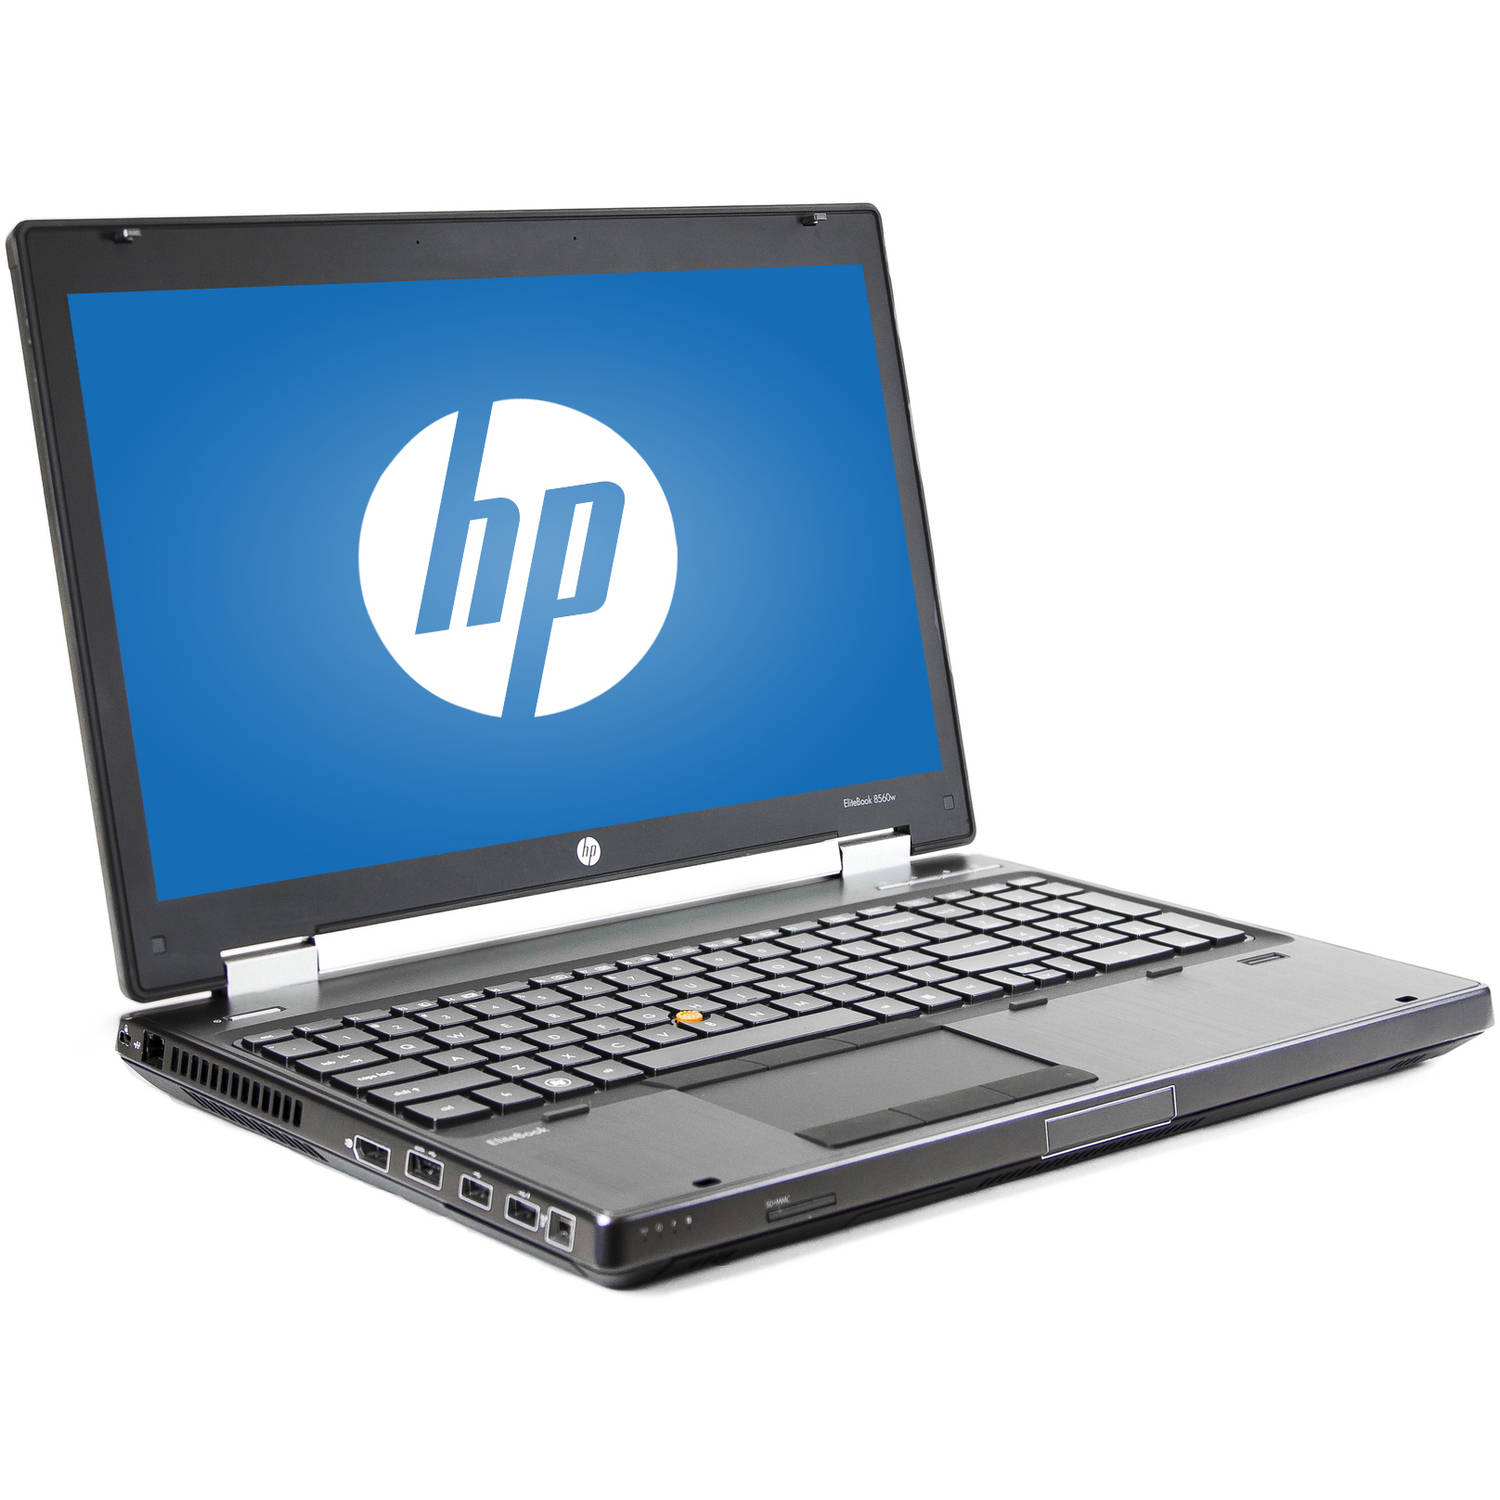 "Refurbished HP Silver 15.6"" 8560W Laptop PC with Intel Core i5-2540M Processor, 16GB Memory, 256GB Solid State Drive and Windows 7 Professional"